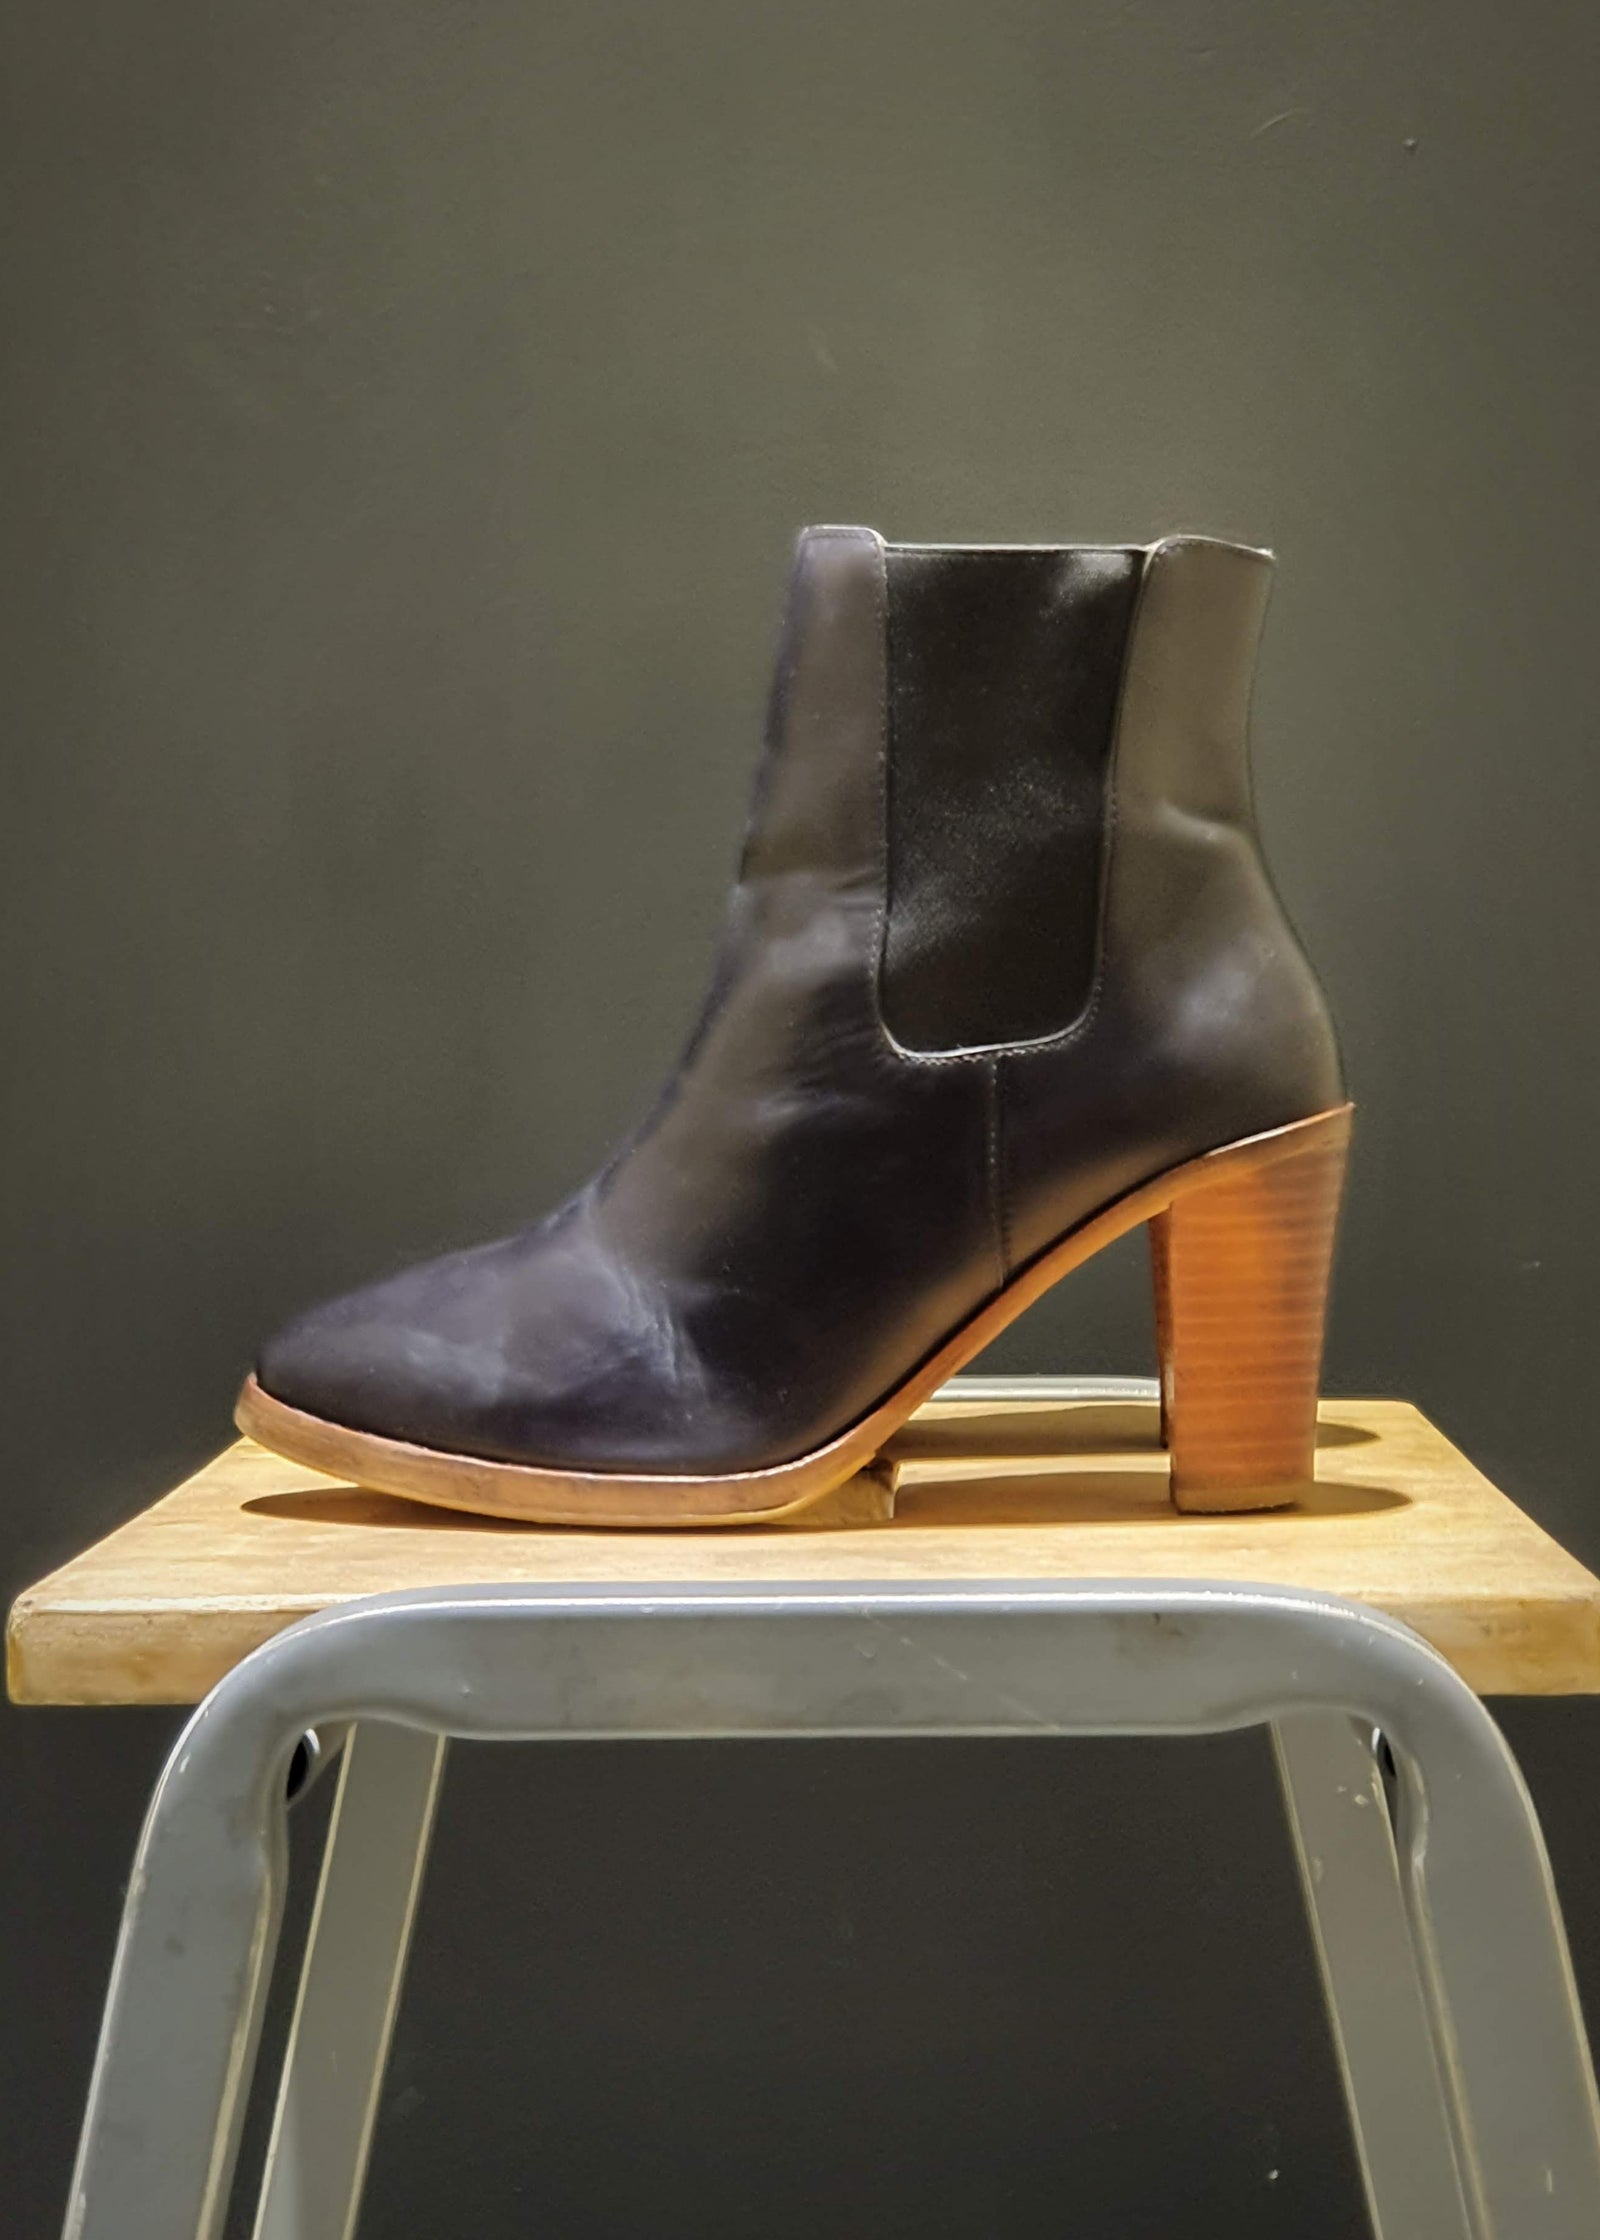 Preworn | Preloved <br> 'A. P. C.' <br>Healed Chelsea Boots<br>Size 5 UK